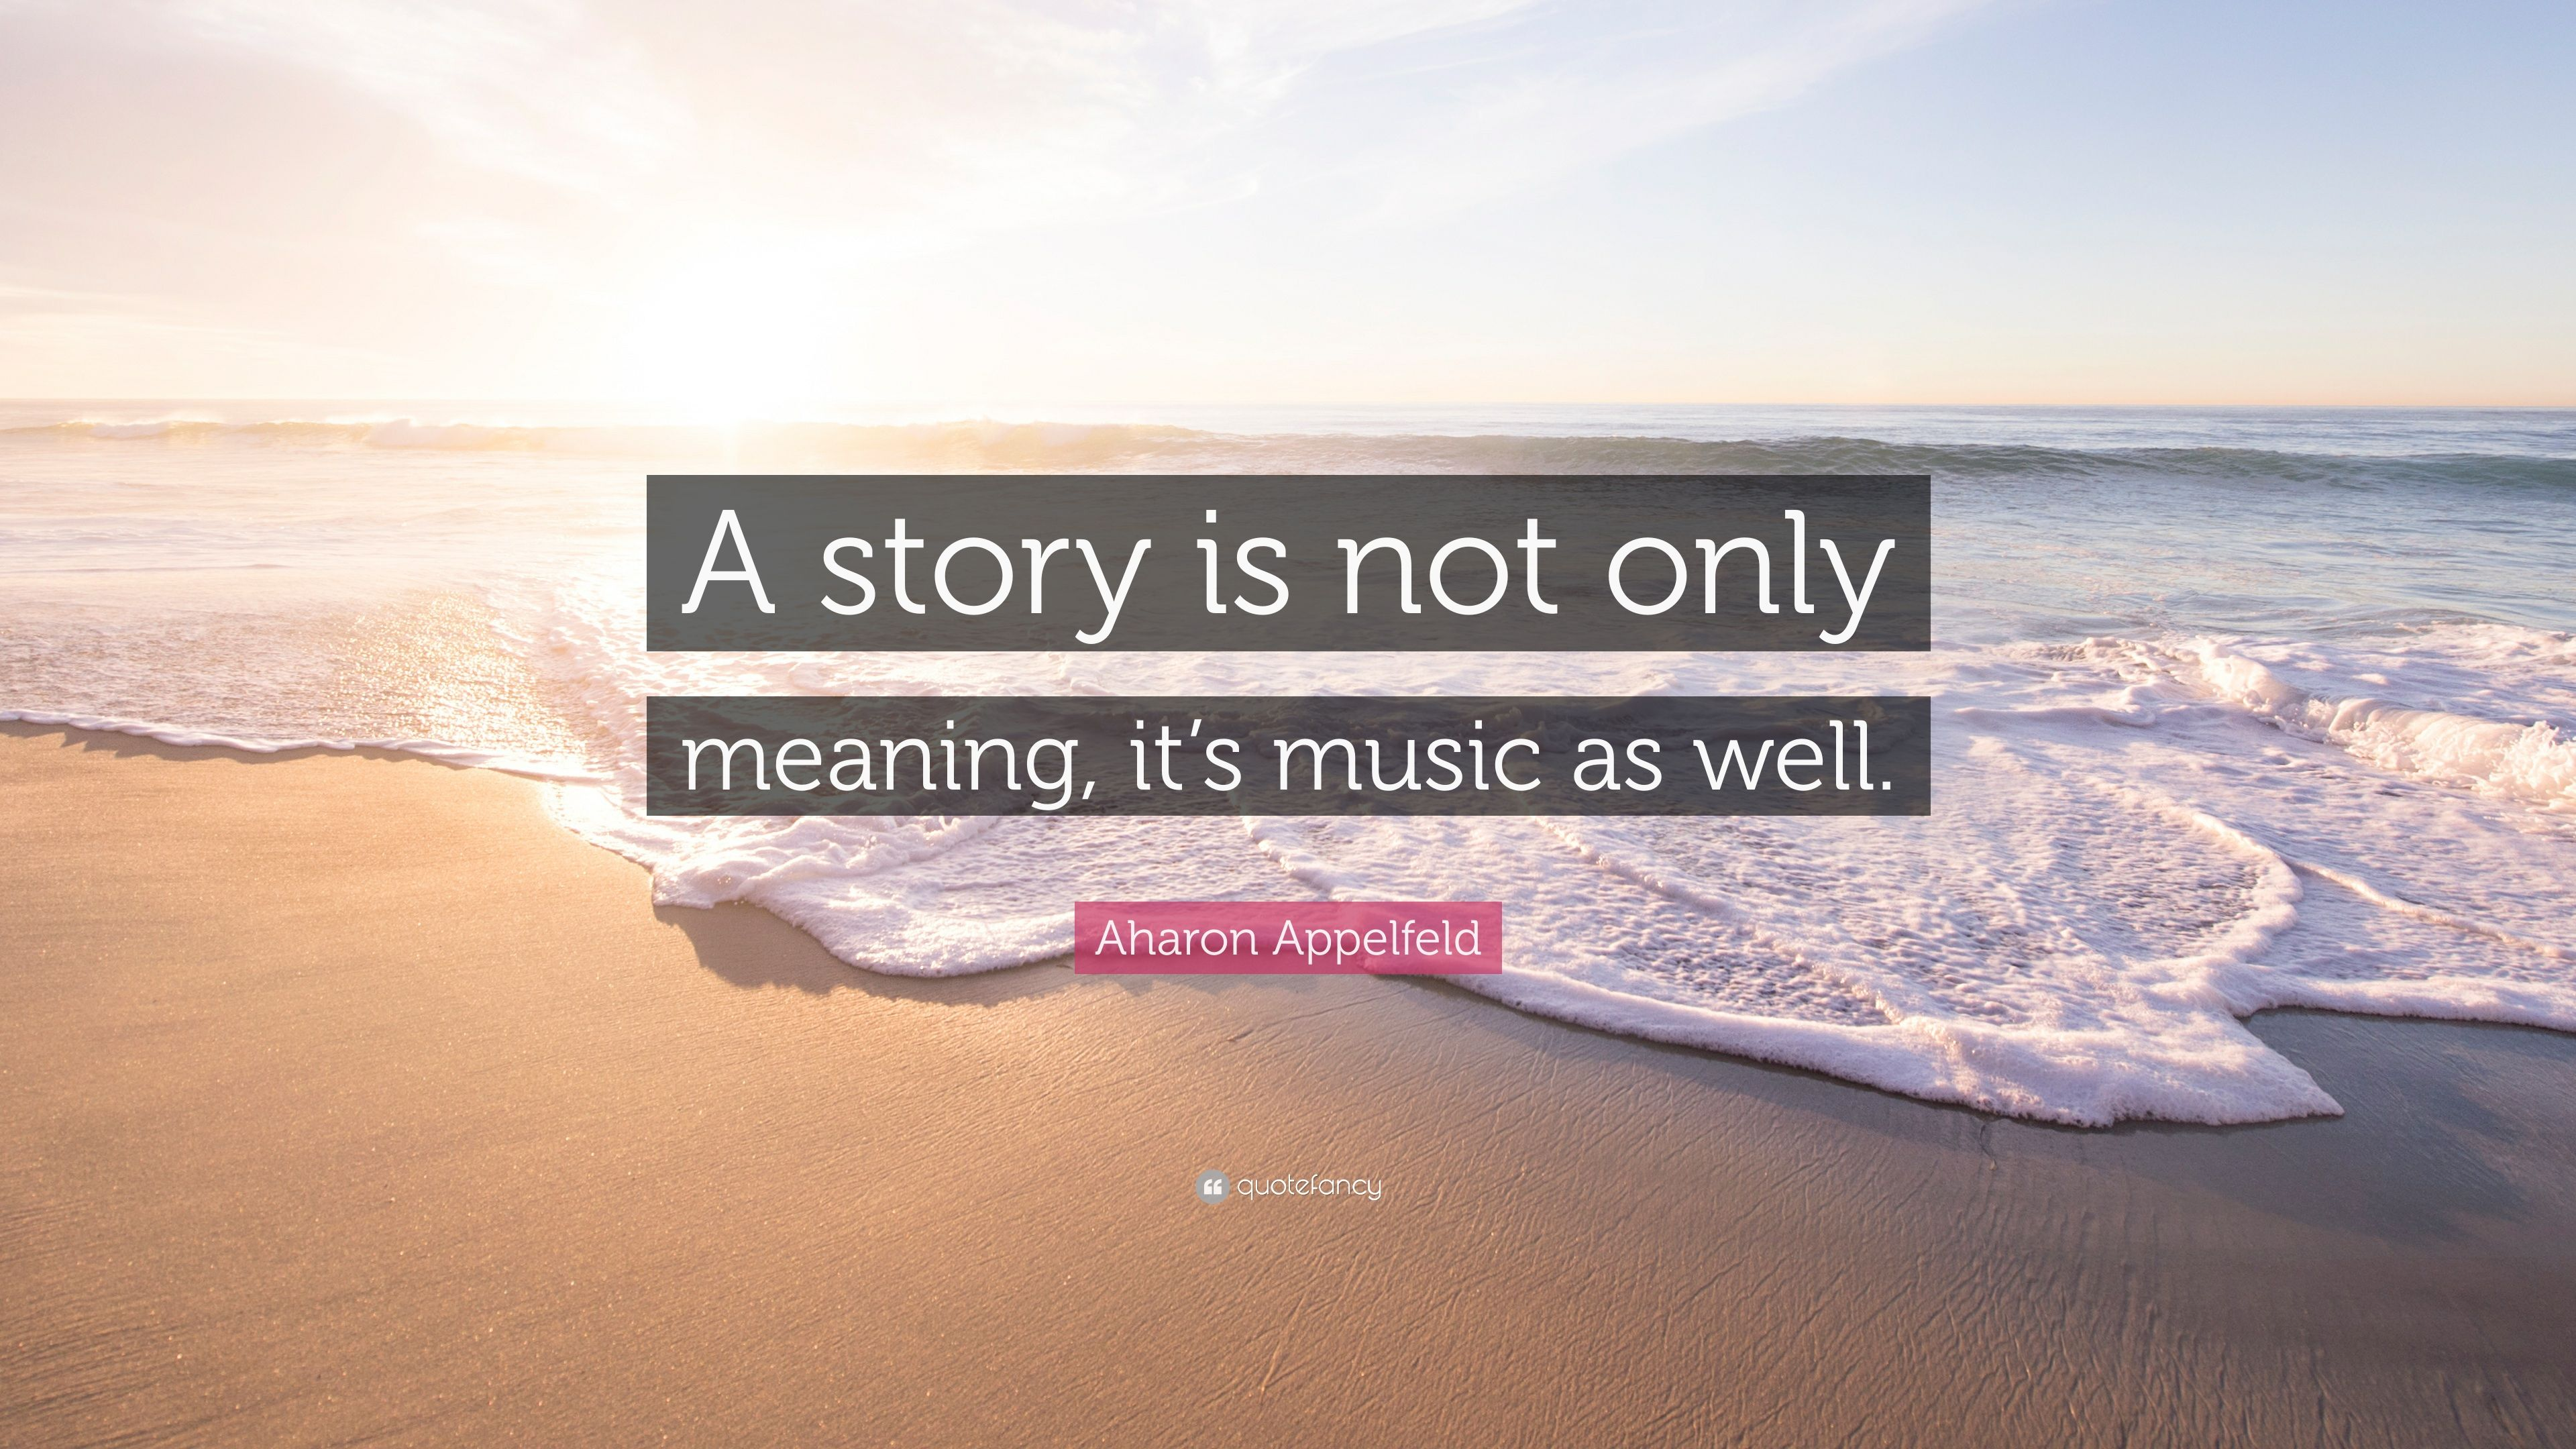 Aharon Appelfeld Quote: U201cA Story Is Not Only Meaning, Itu0027s Music As Well